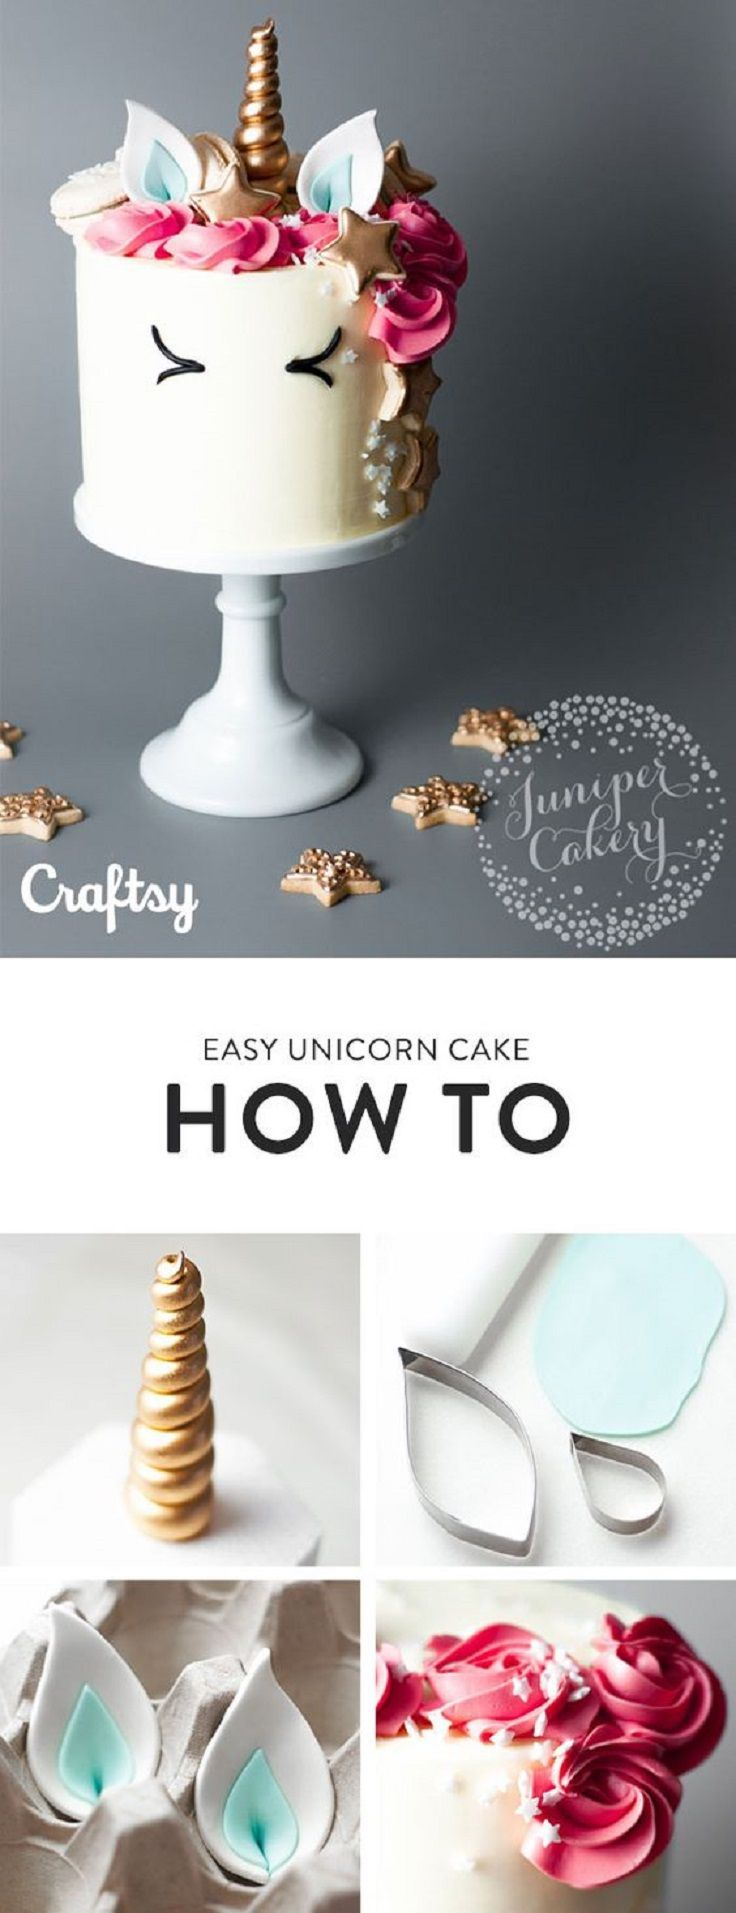 How to Make a Unicorn Cake - An Enchantingly Easy Tutorial - 15 Spring-Inspired Cake Decorating Tips and Tutorials